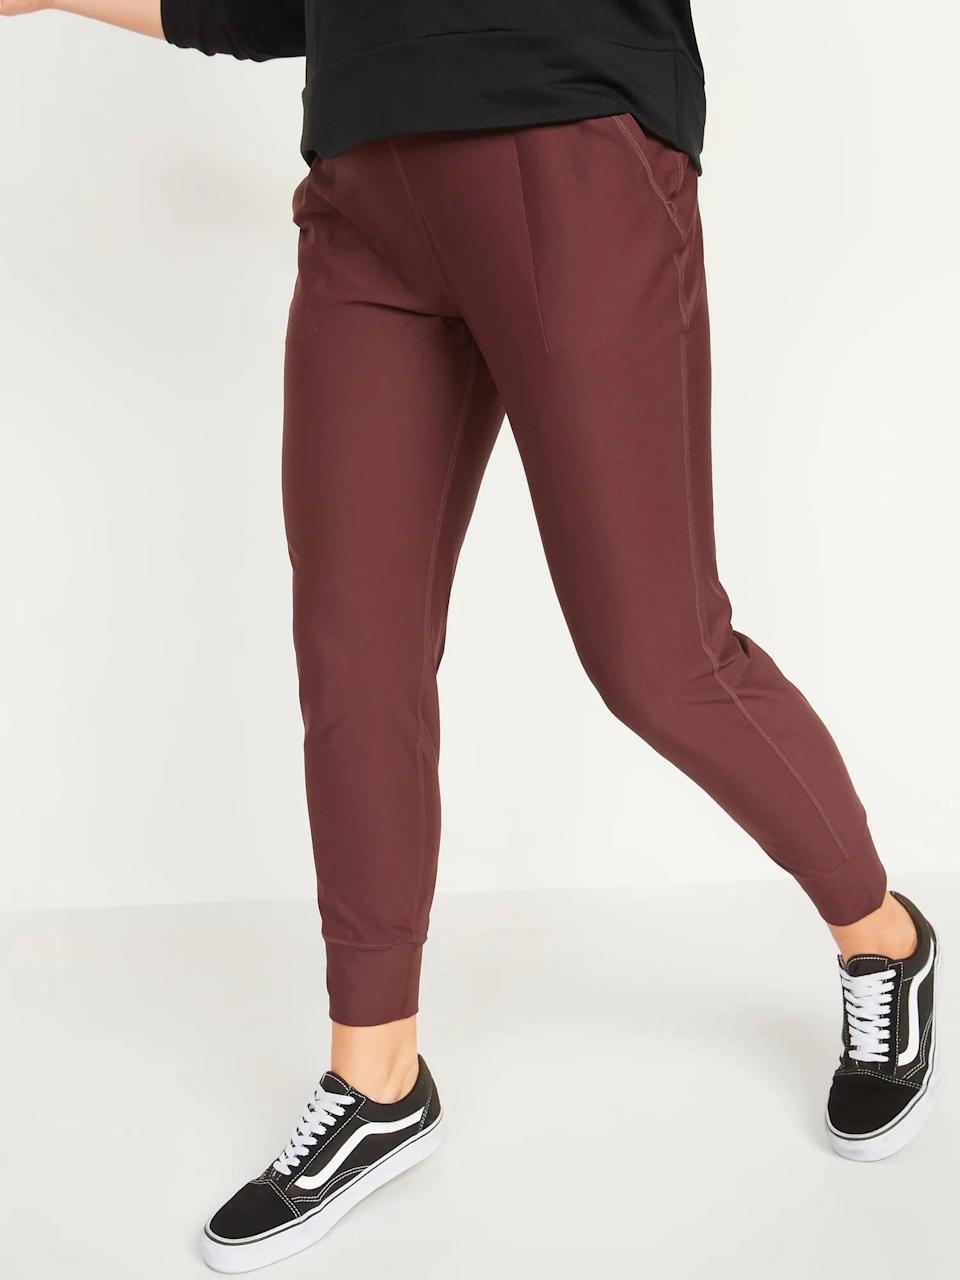 <p>All stretchy <span>Old Navy High-Waisted PowerSoft 7/8-Length Joggers</span> ($20-$40, originally $40) are also rather breathable so, choose these if heavy fabric makes you sweat.</p>